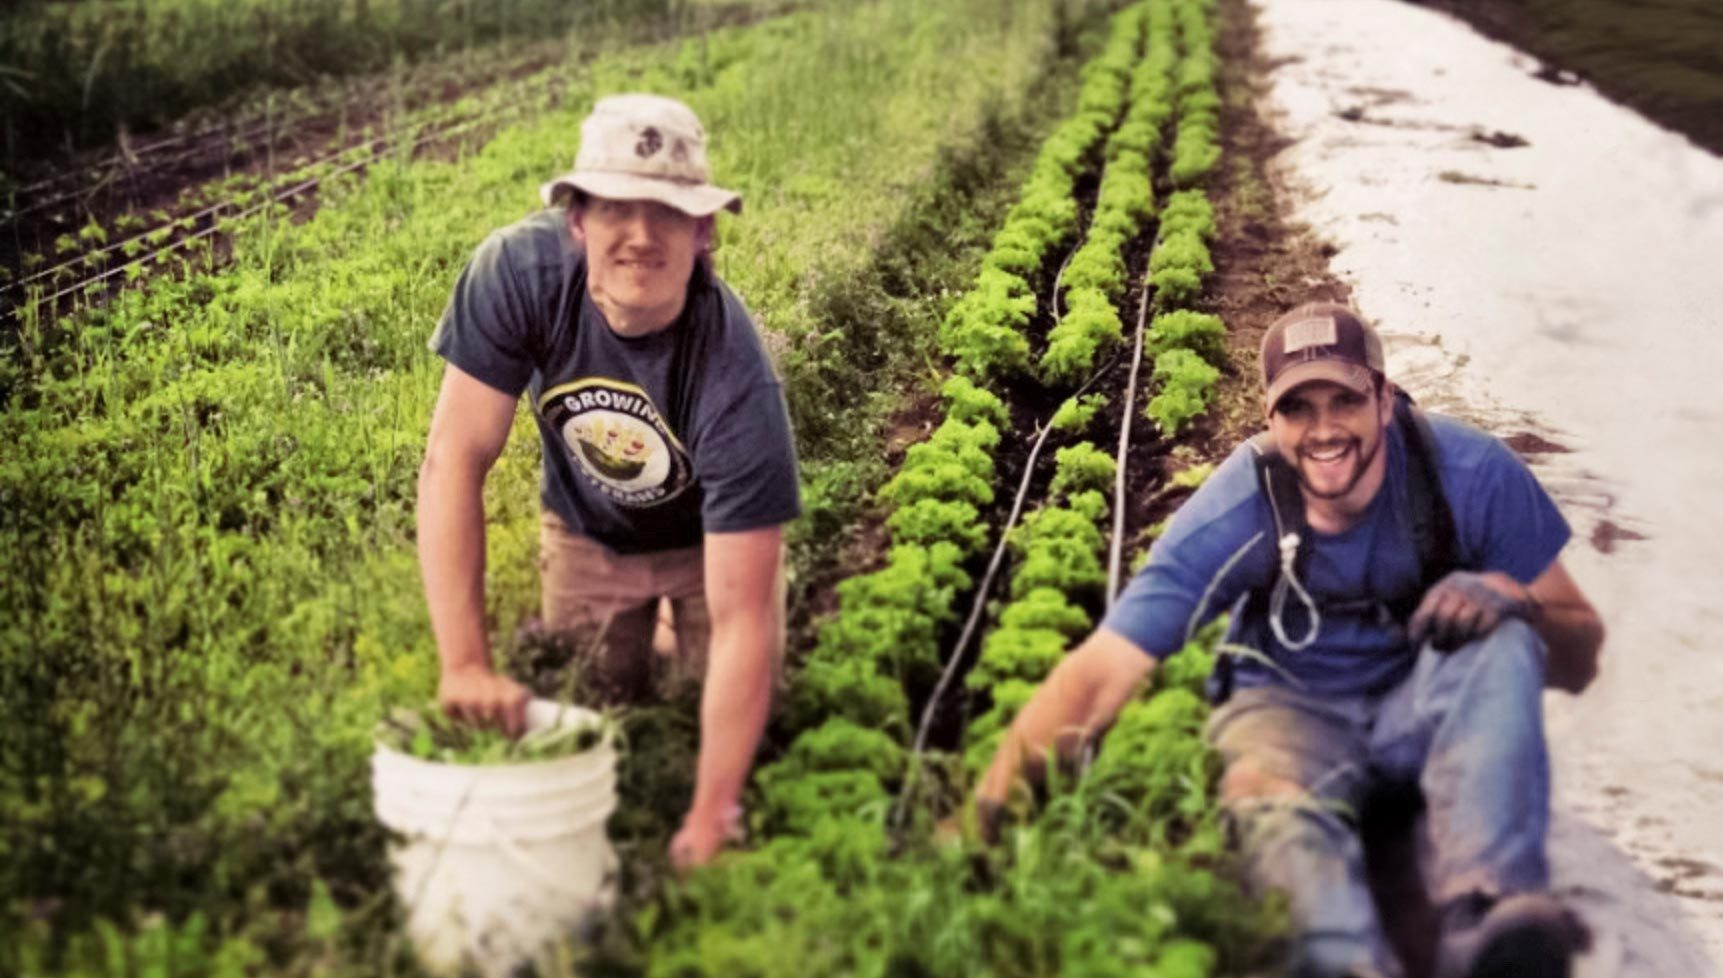 5 Heartwarming Stories of How Veterans Continue to Help Each Other Even After War Planting Hope